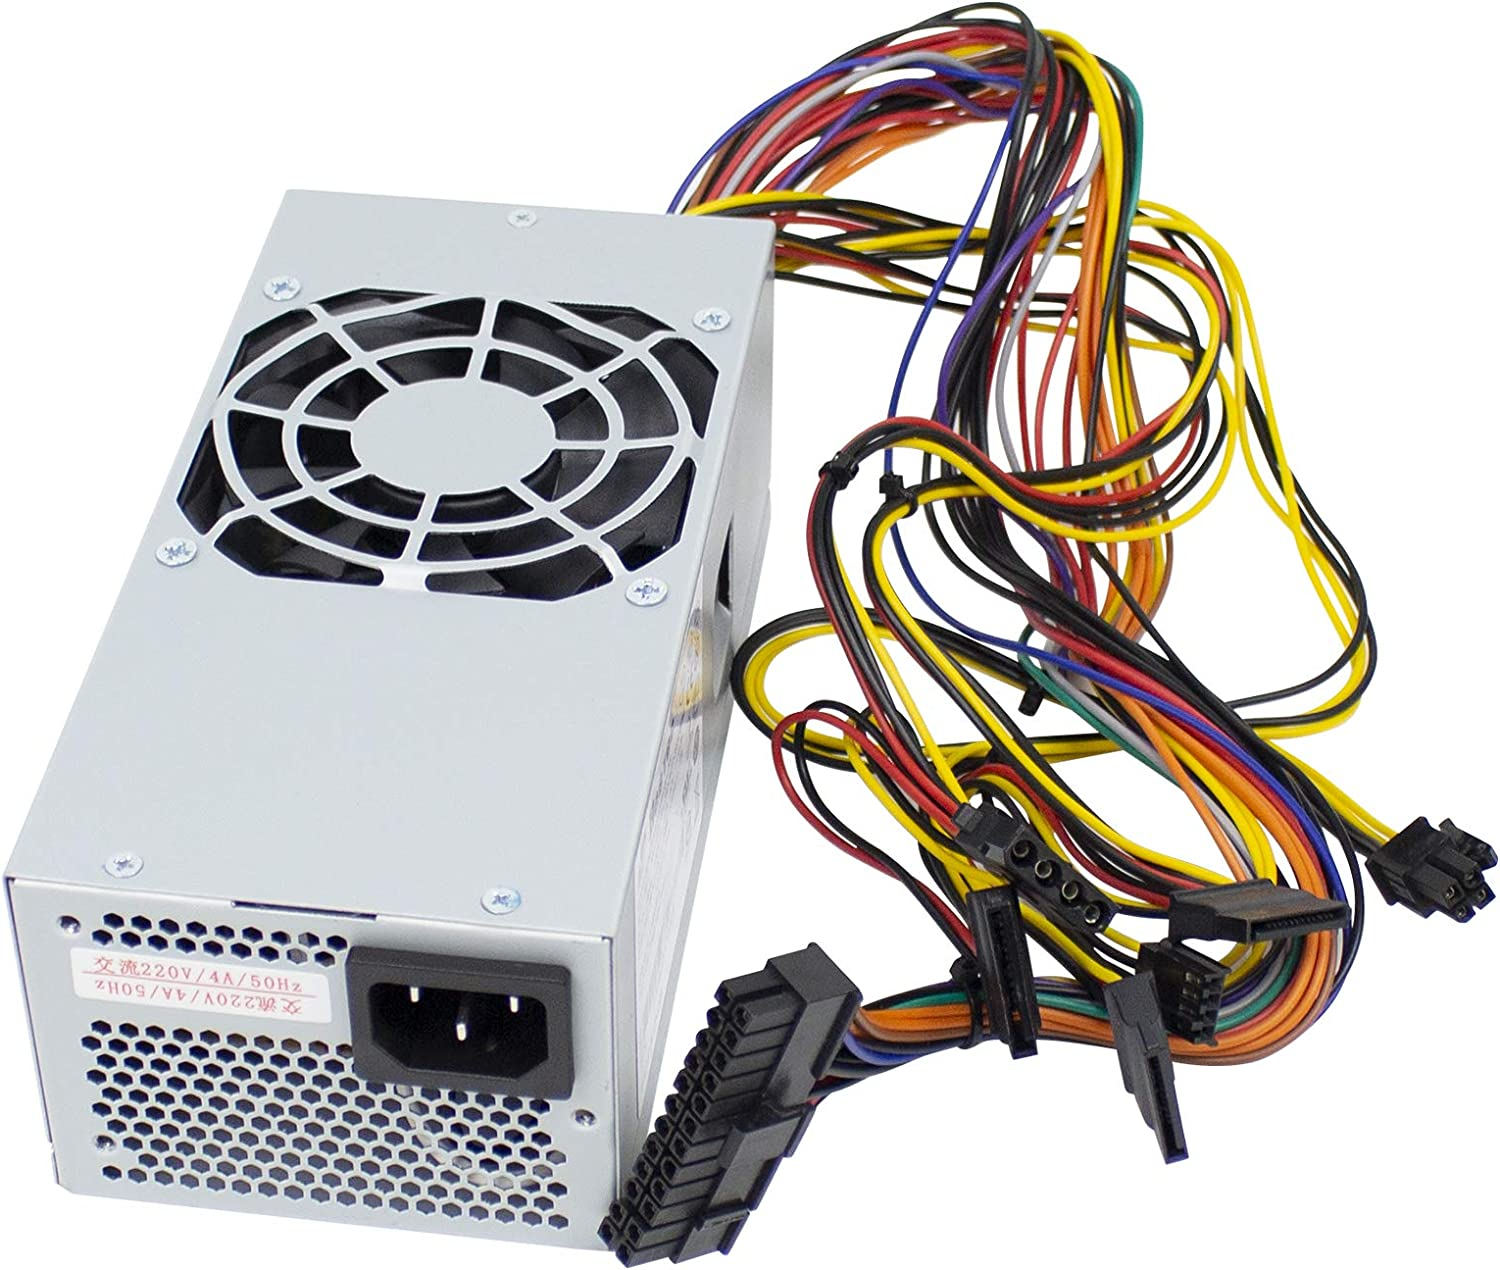 YEECHUN 250W TFX0250D5W Power Supply Replacement for Dell Inspiron 530S 531S, Vostro 200(Slim) 200S 220S, Studio 540S Small Form Factor(SFF) Systems Compatible Part Numbers: XW605, YX301, XW604, XW784